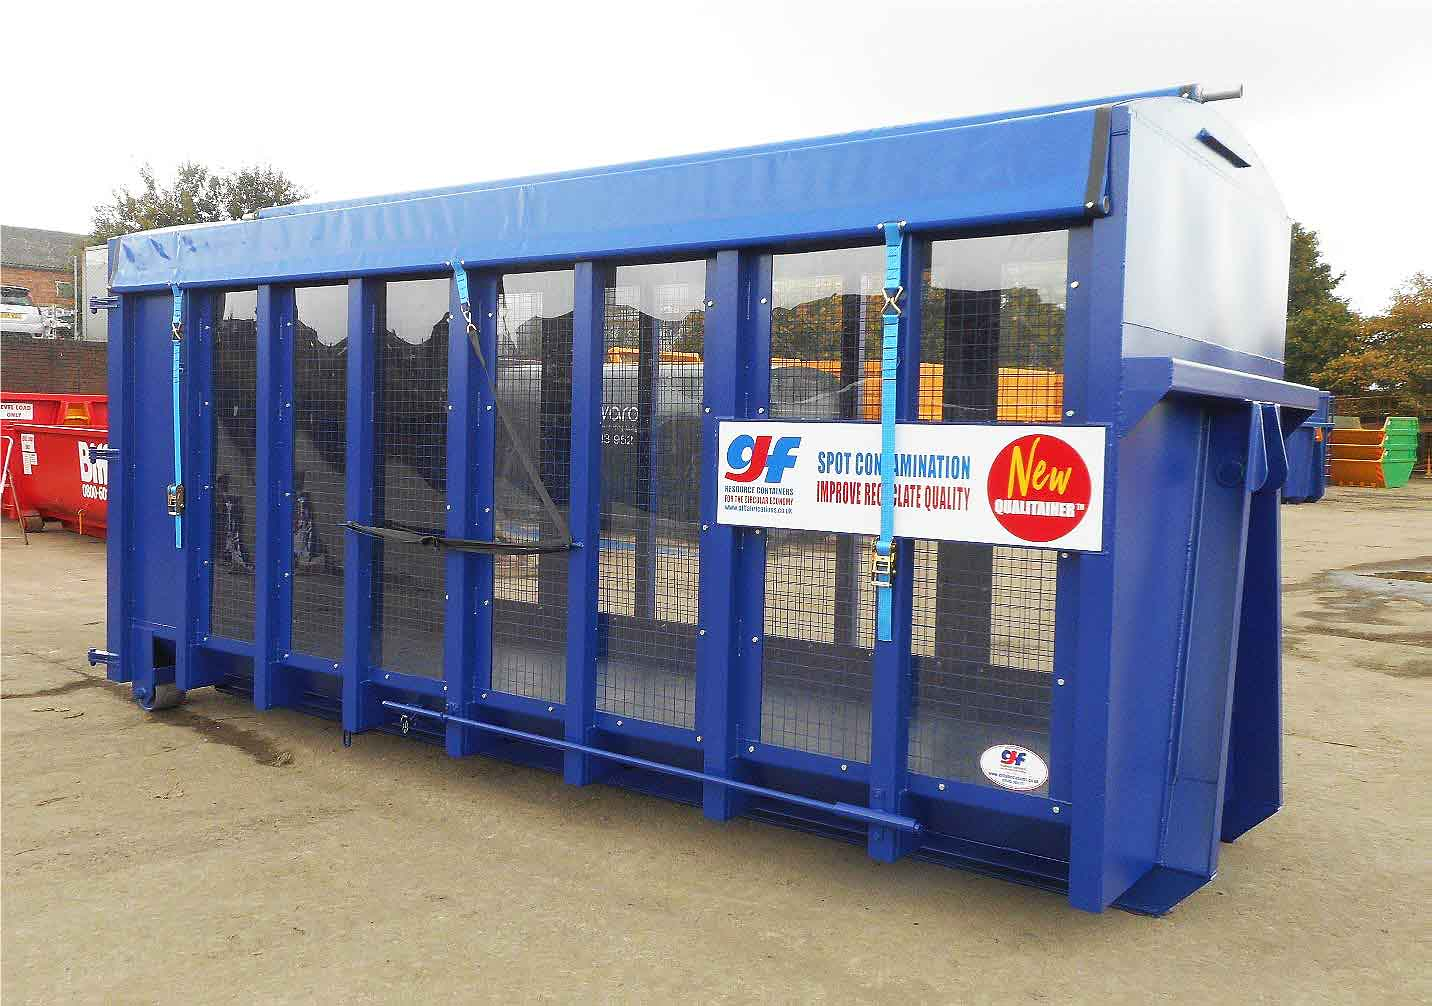 GJF Fabrications Launches QualitainerTM Hooklift Container to Reduce Contamination of Recyclate